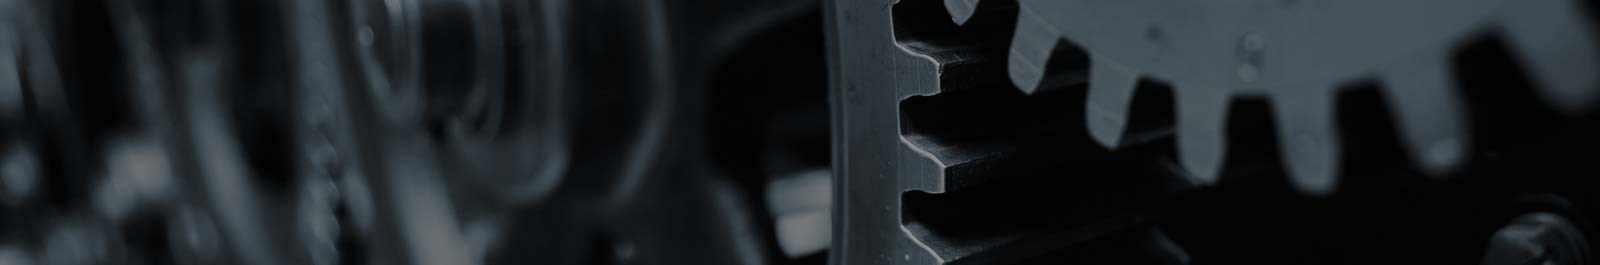 Header image - closeup of gears from a bank safe